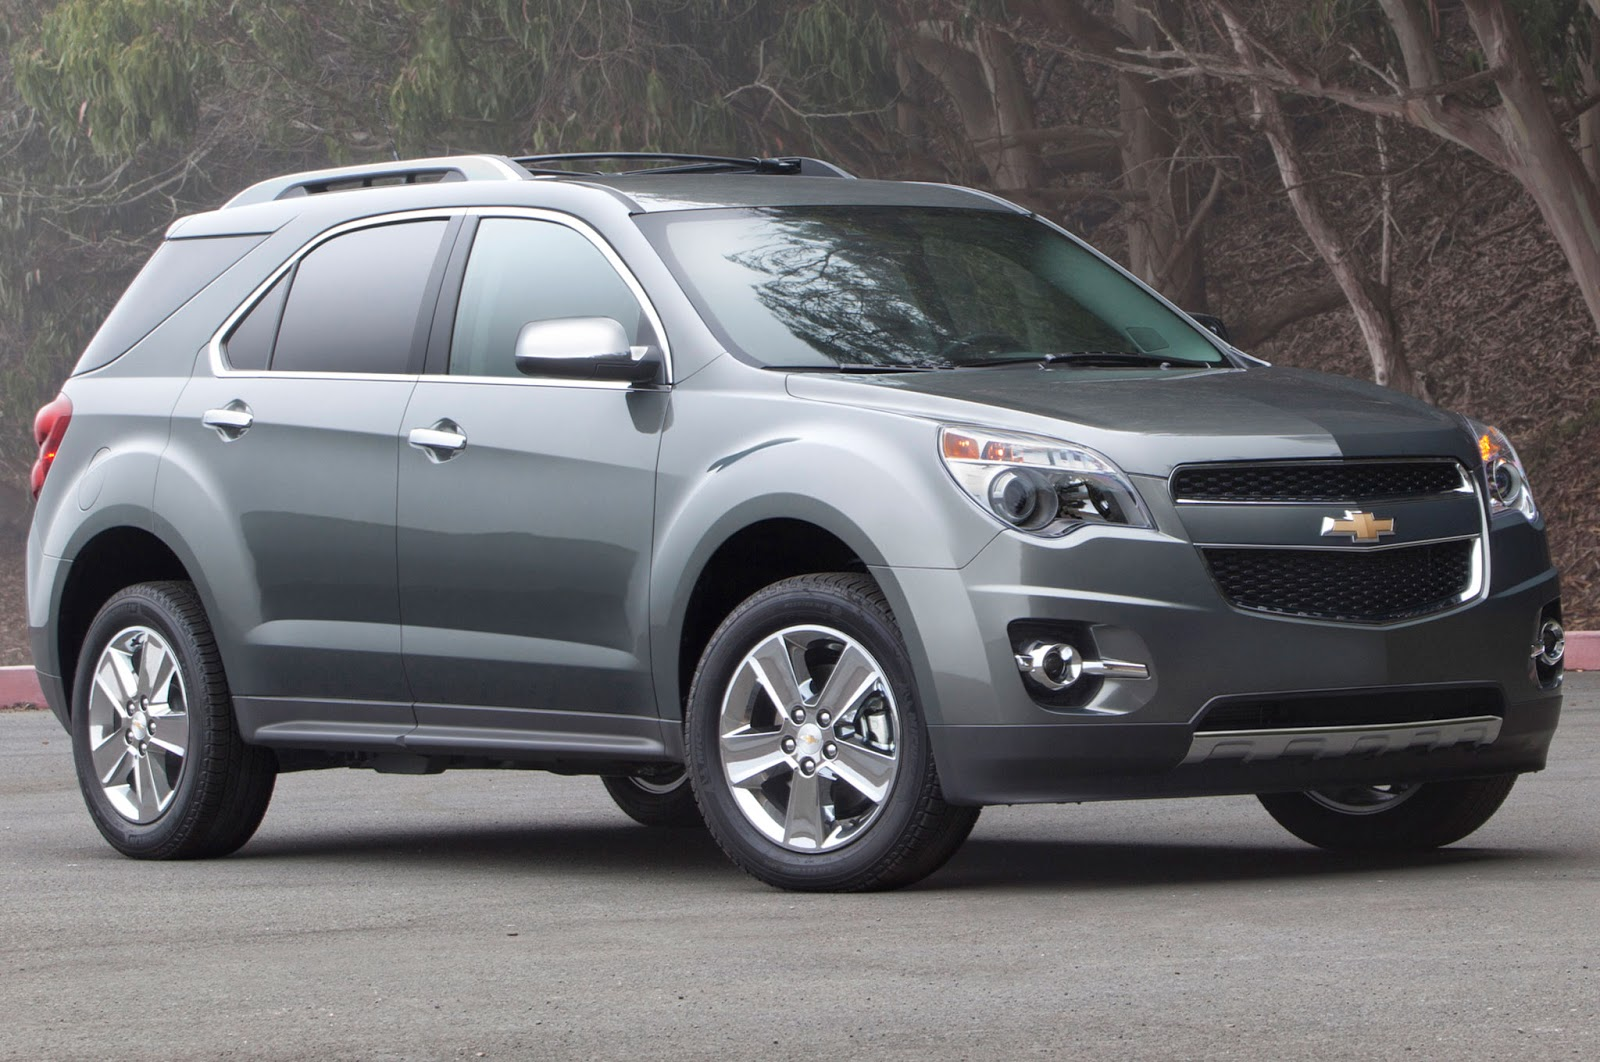 2015 chevy equinox top cars. Black Bedroom Furniture Sets. Home Design Ideas